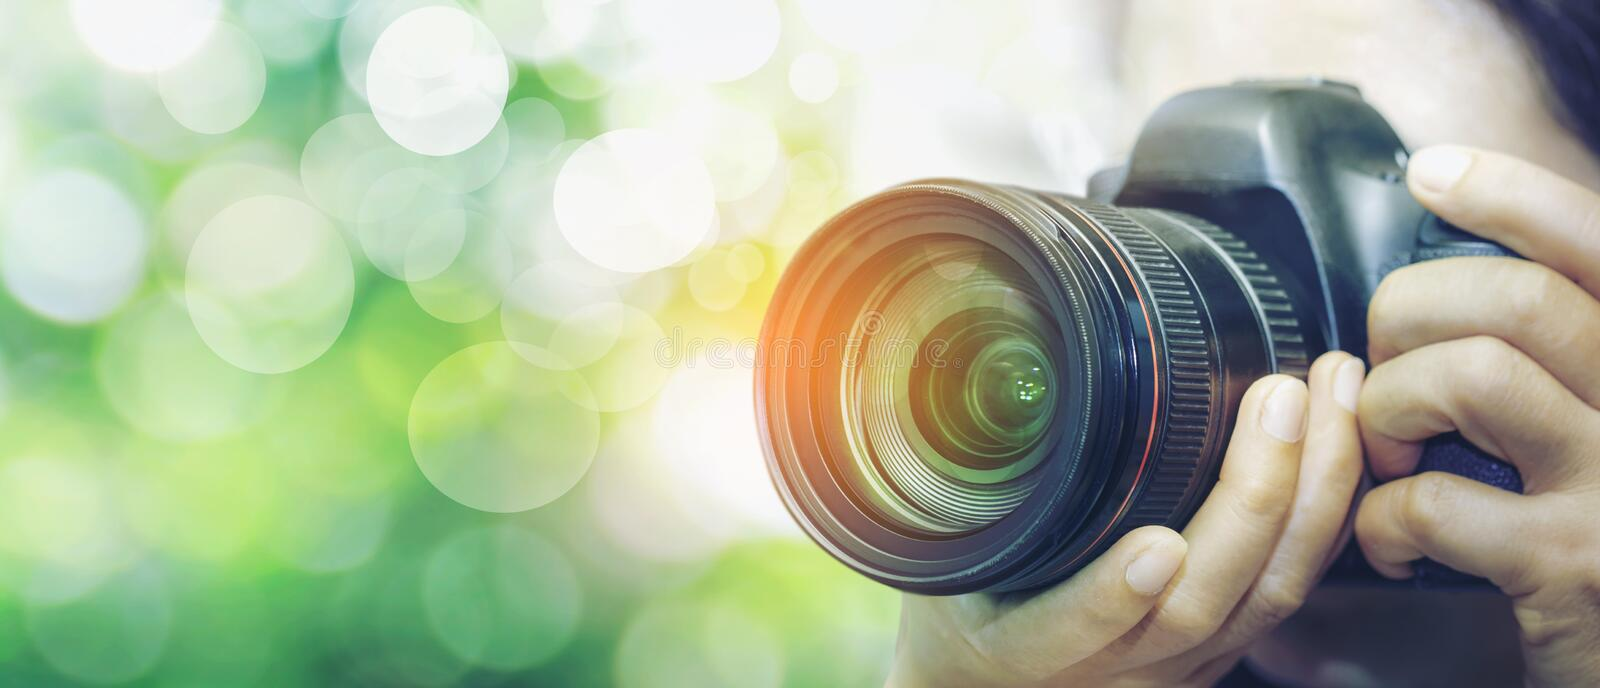 Photographer with camera in hand looking through the camera lens. Bokeo Natural Green Background stock photo